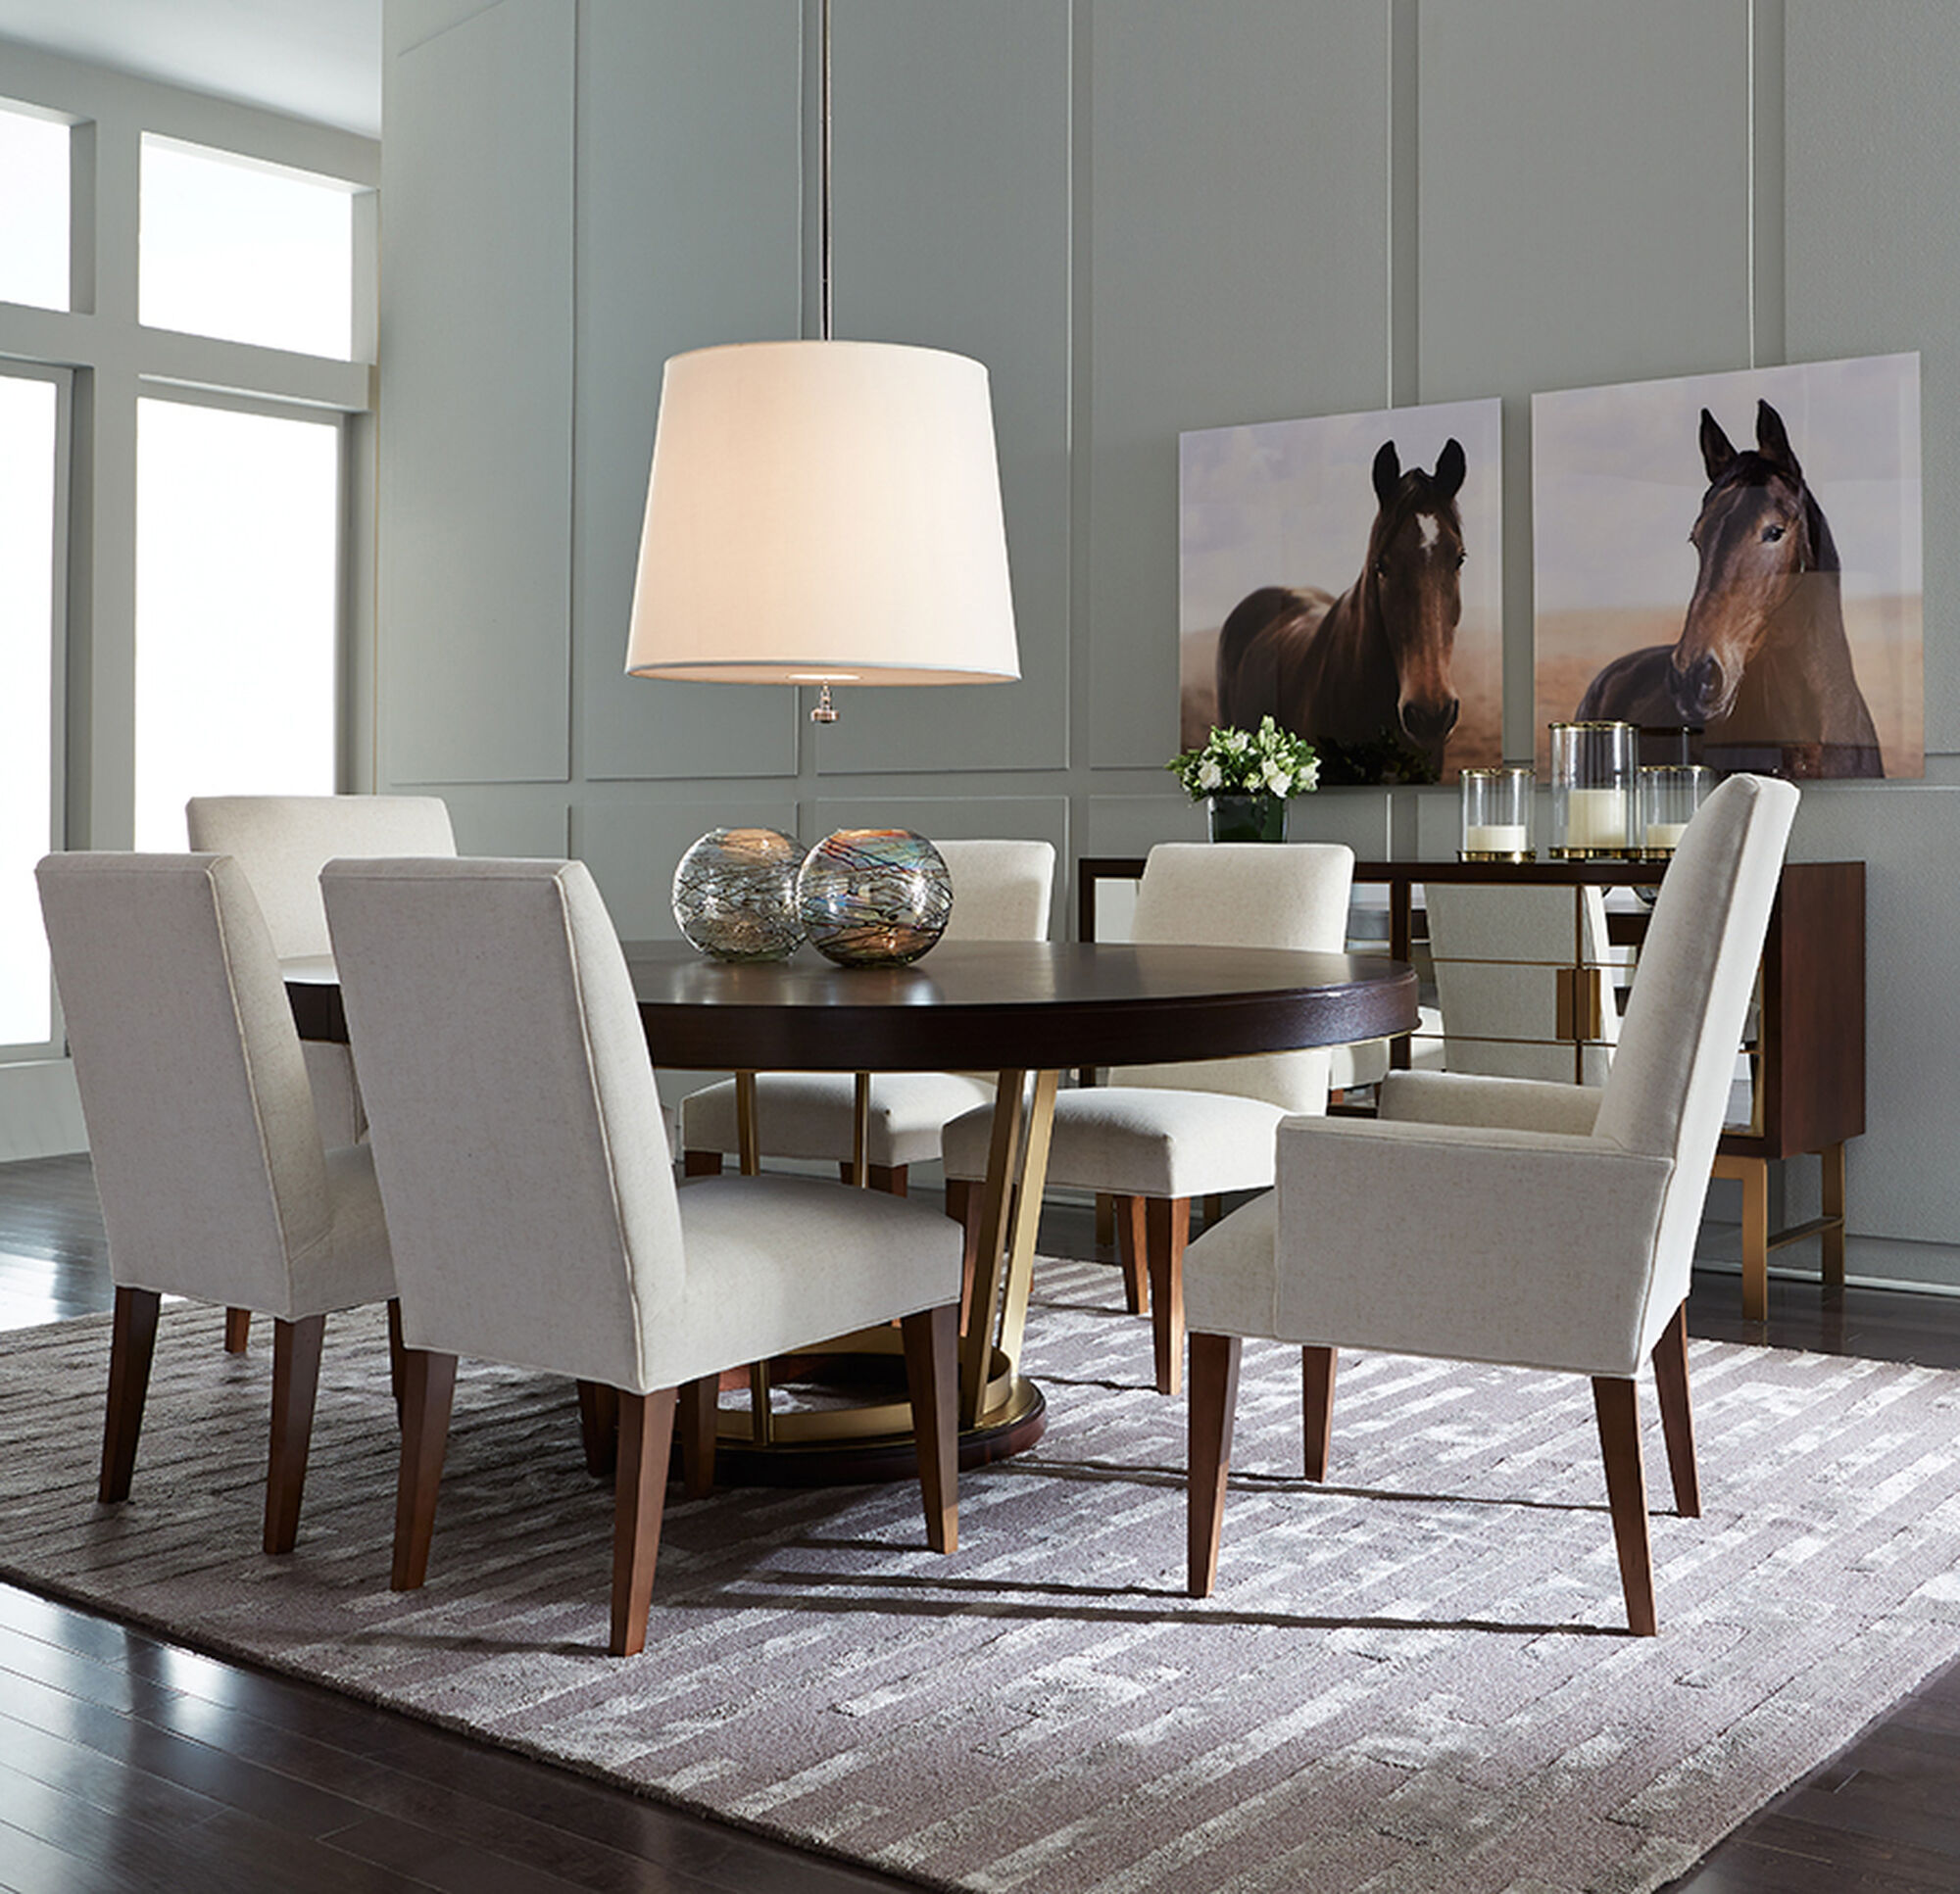 mitchell gold dining chairs. mitchell gold dining chairs